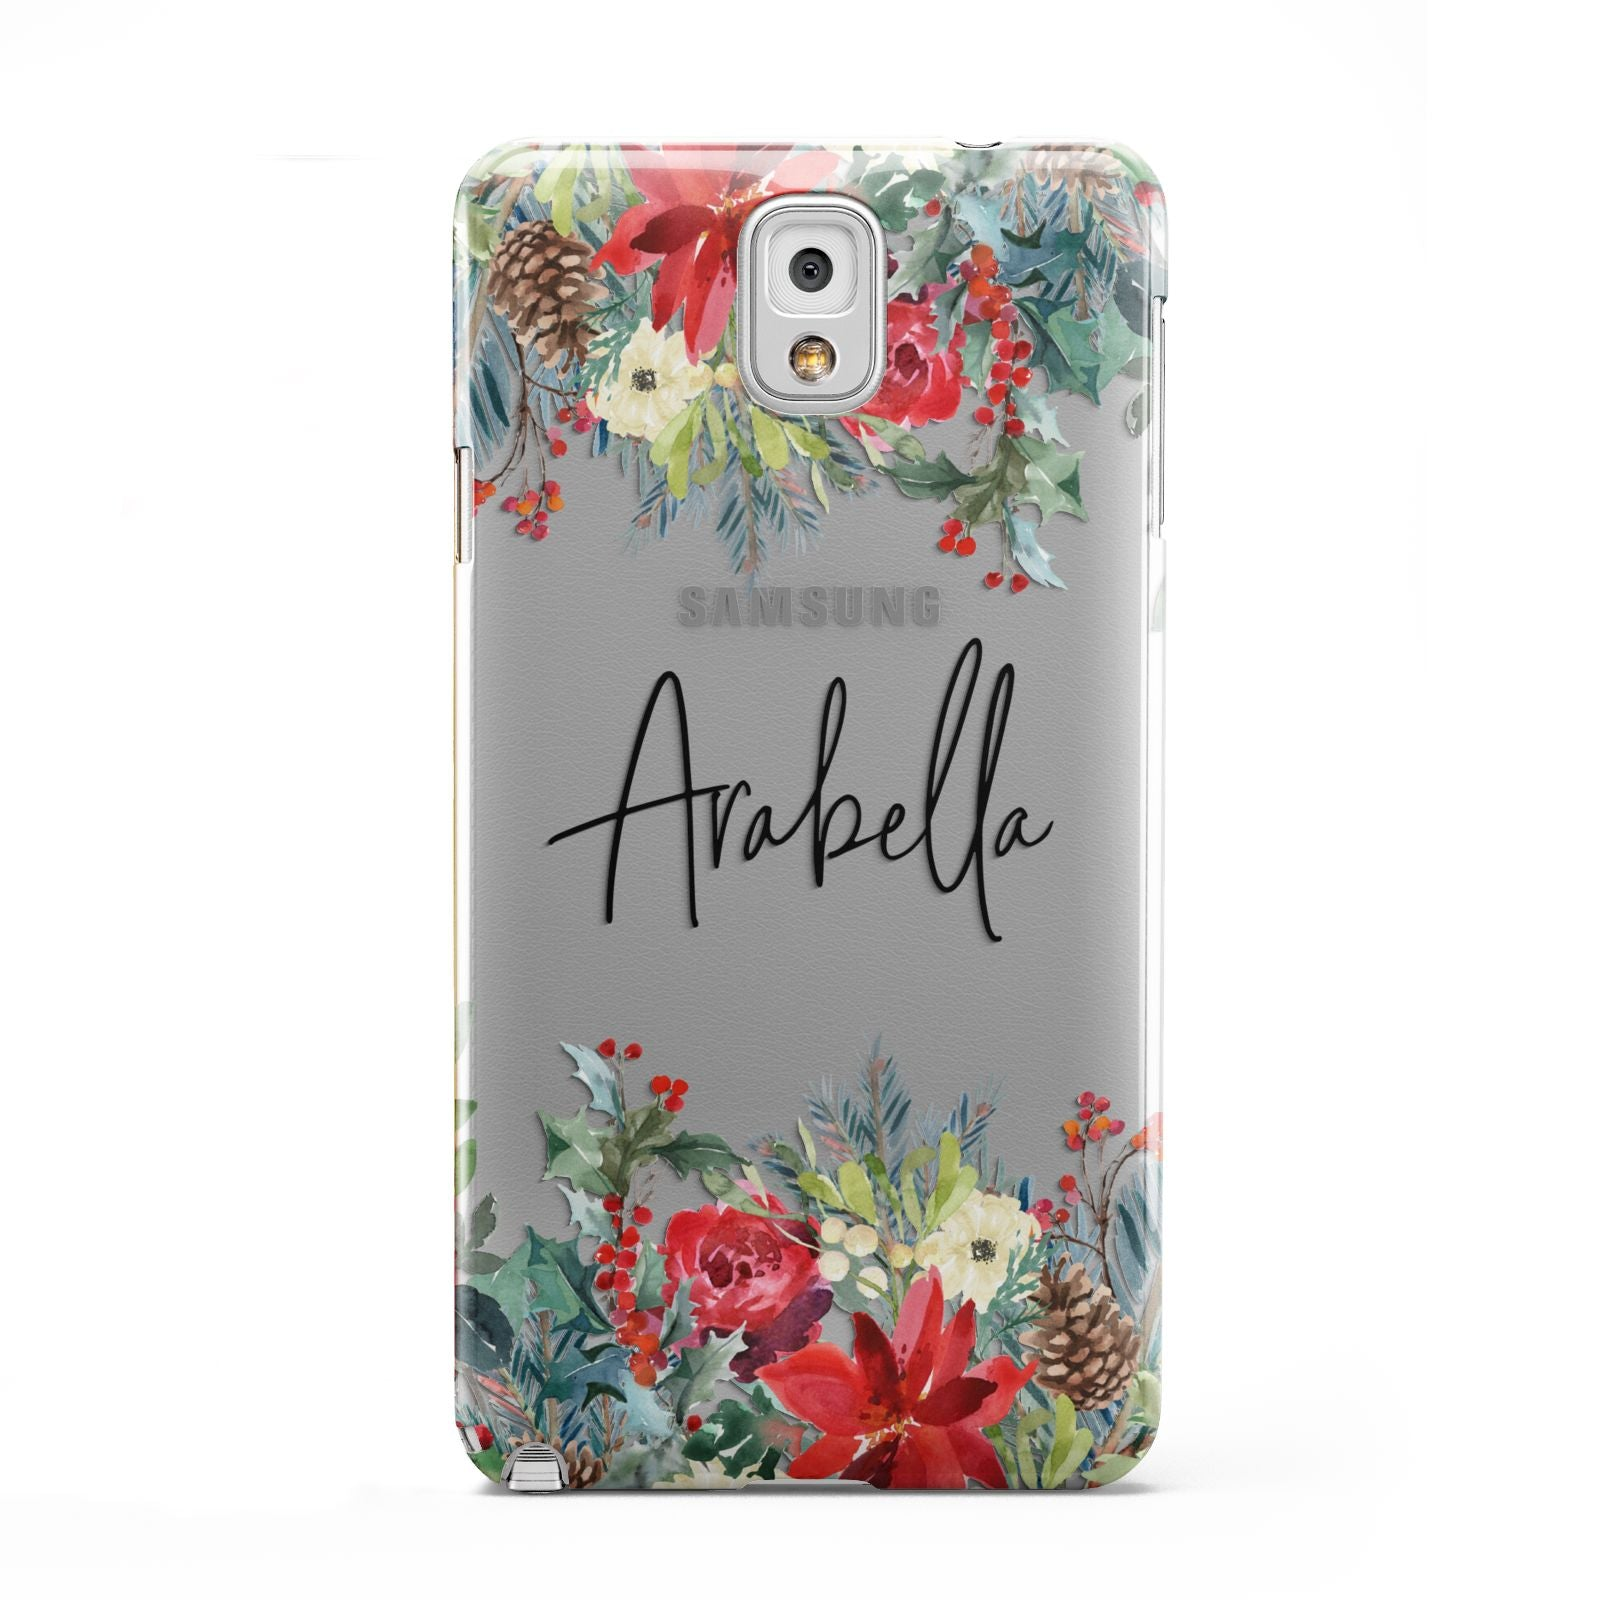 Personalised Floral Winter Arrangement Samsung Galaxy Note 3 Case